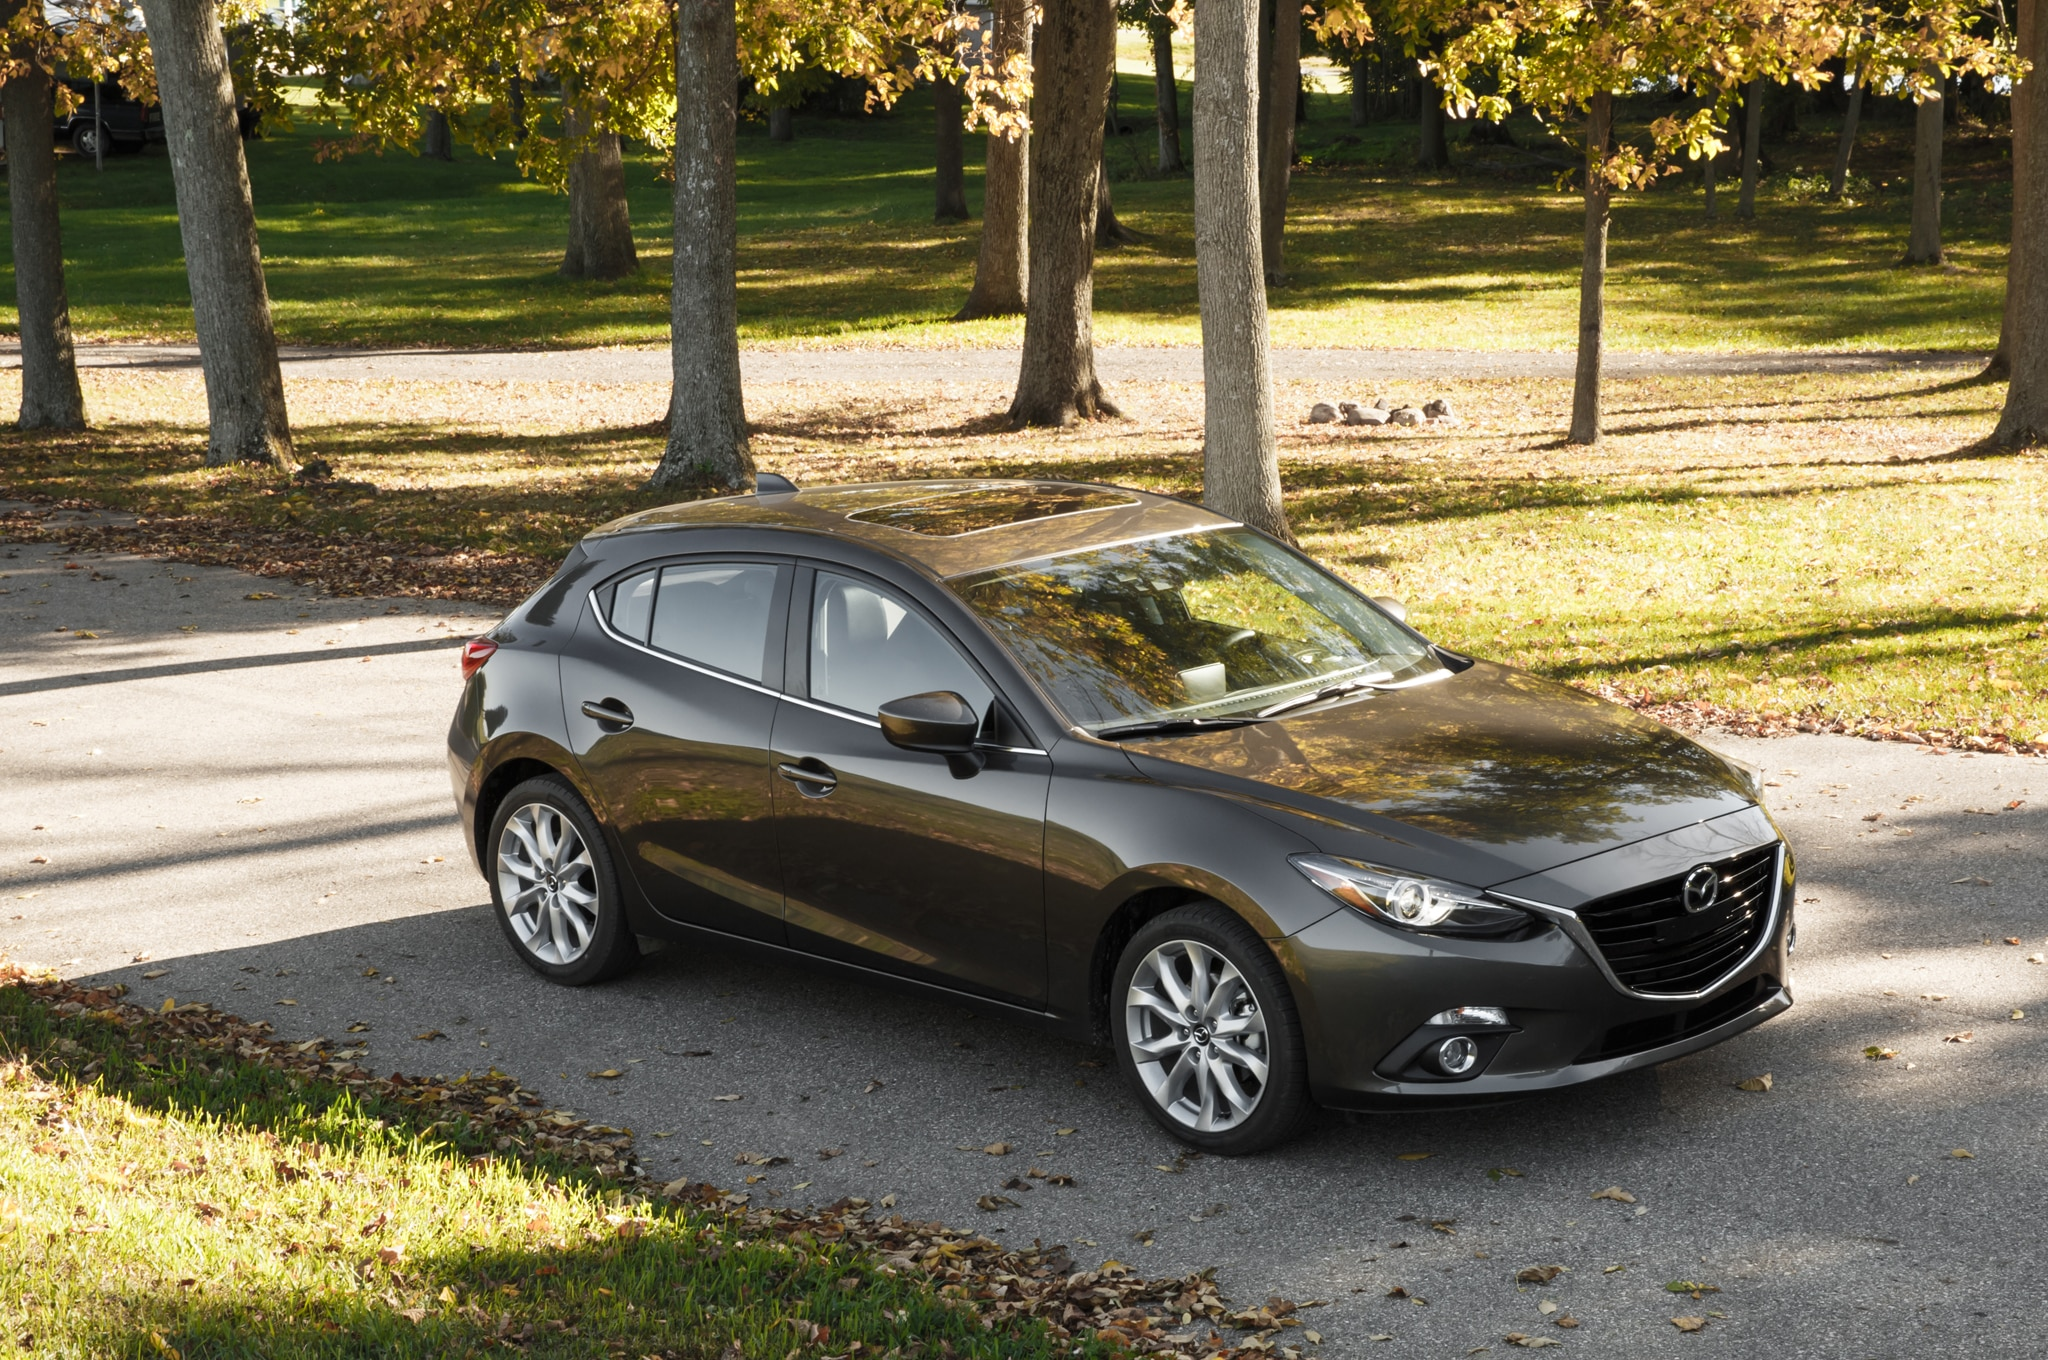 2014 Mazda 3 Automobile Of The Year Contender 21